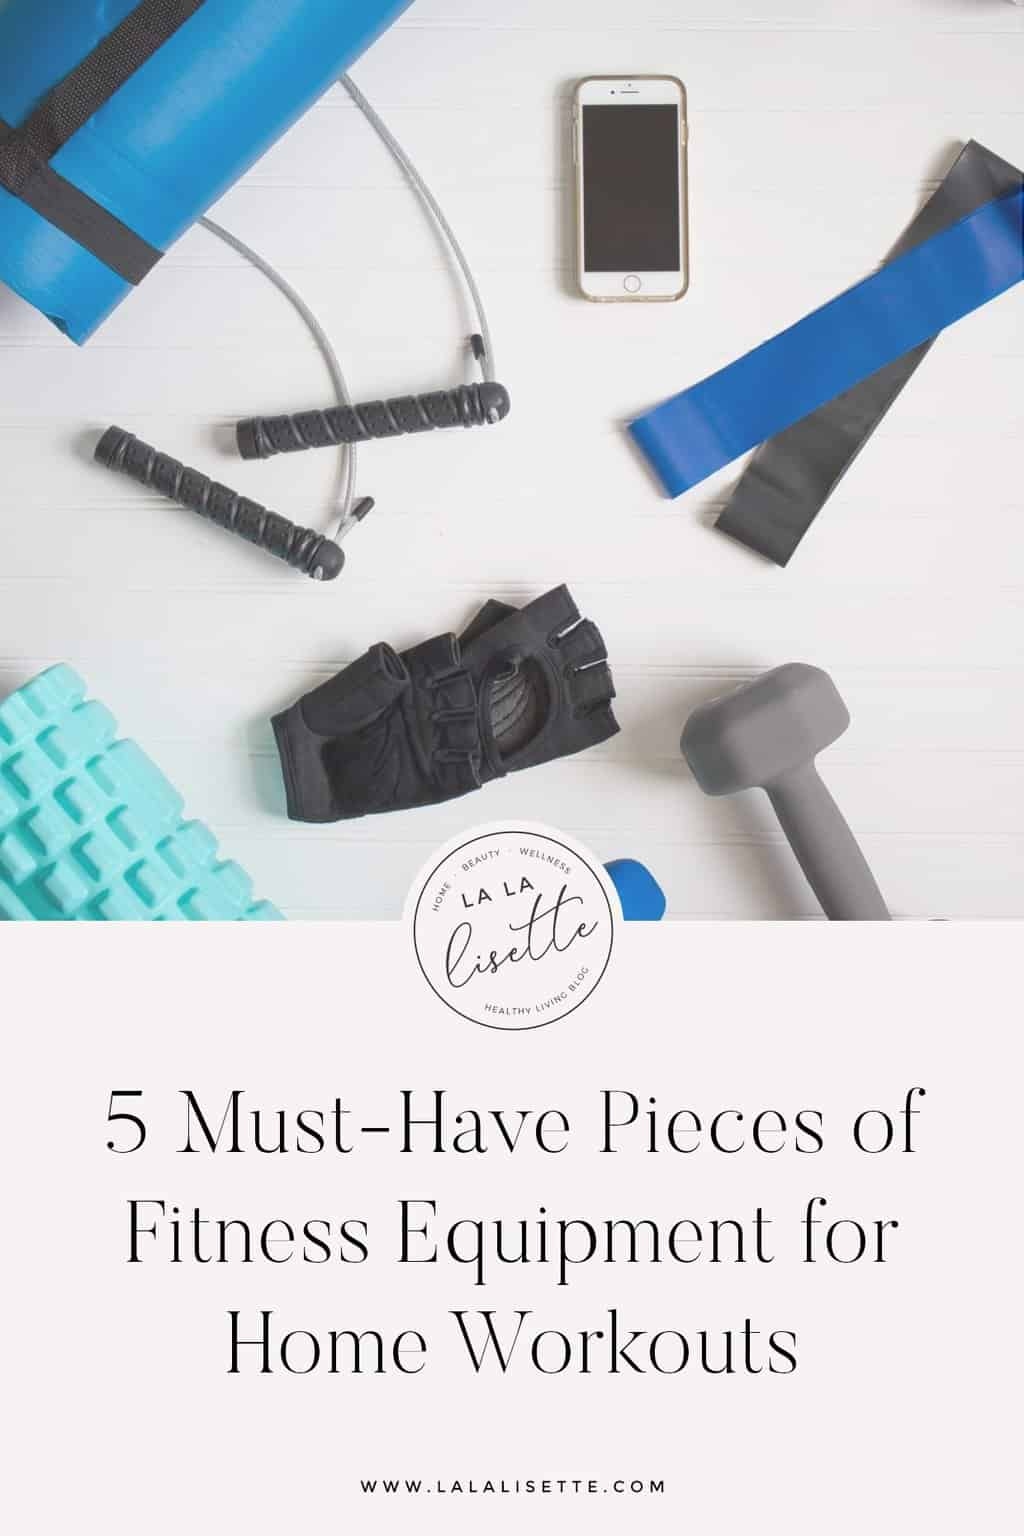 graphic with text: 5 Must-Have Pieces of Fitness Equipment for Home Workouts